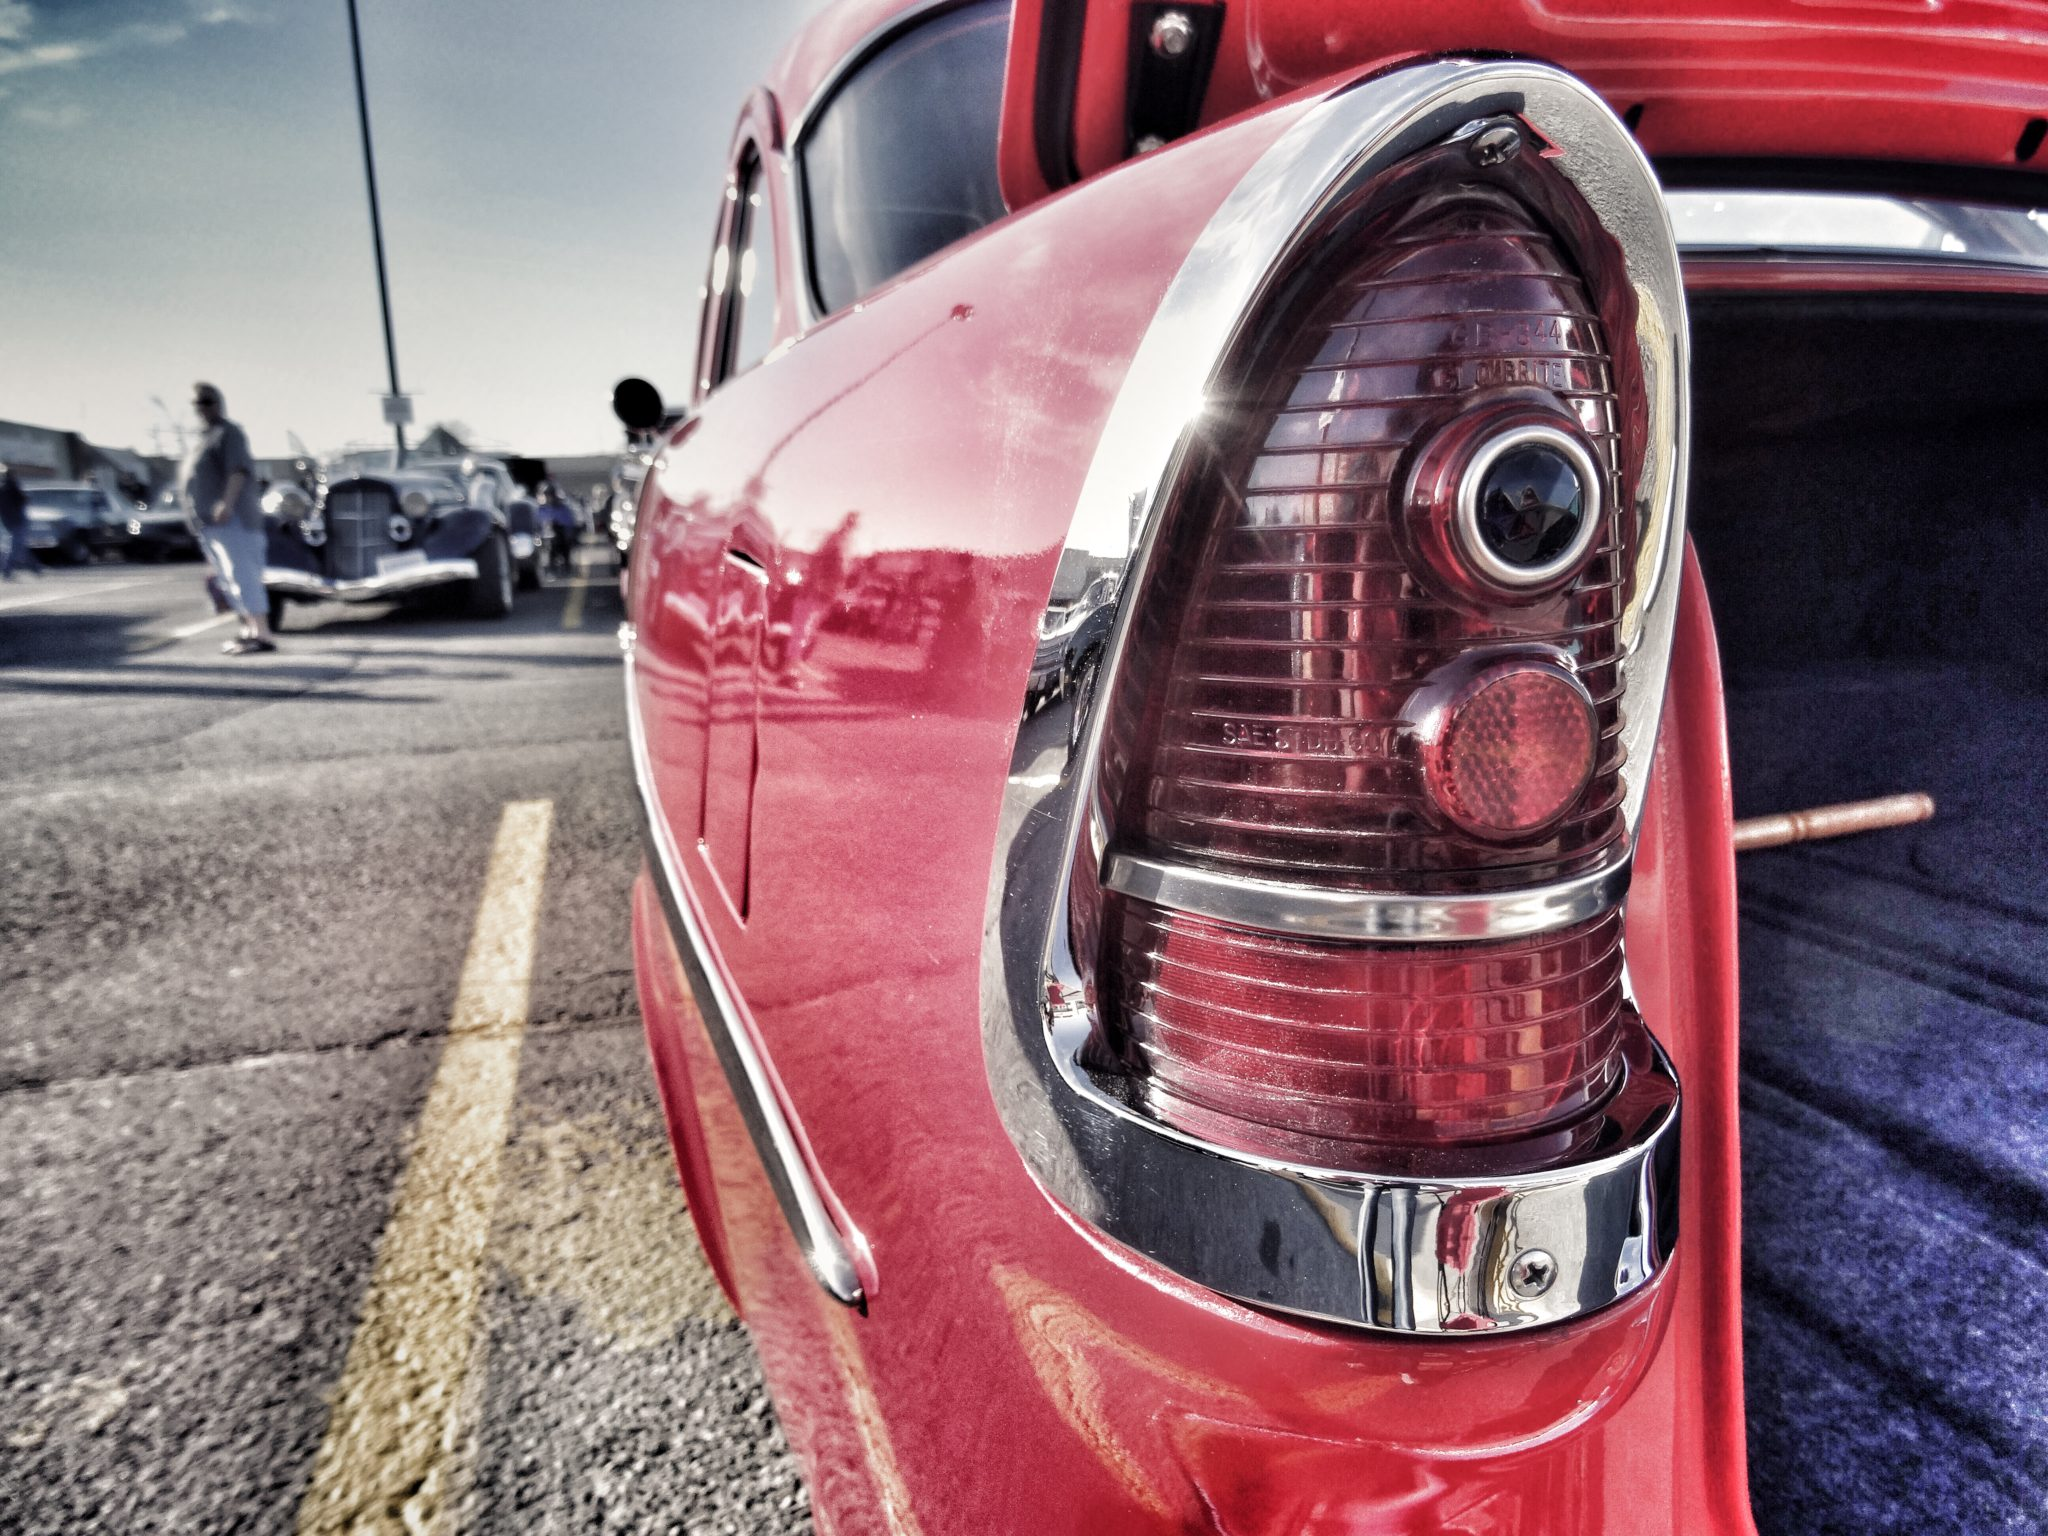 Photo of the left tail light of a 1955 Chevrolet